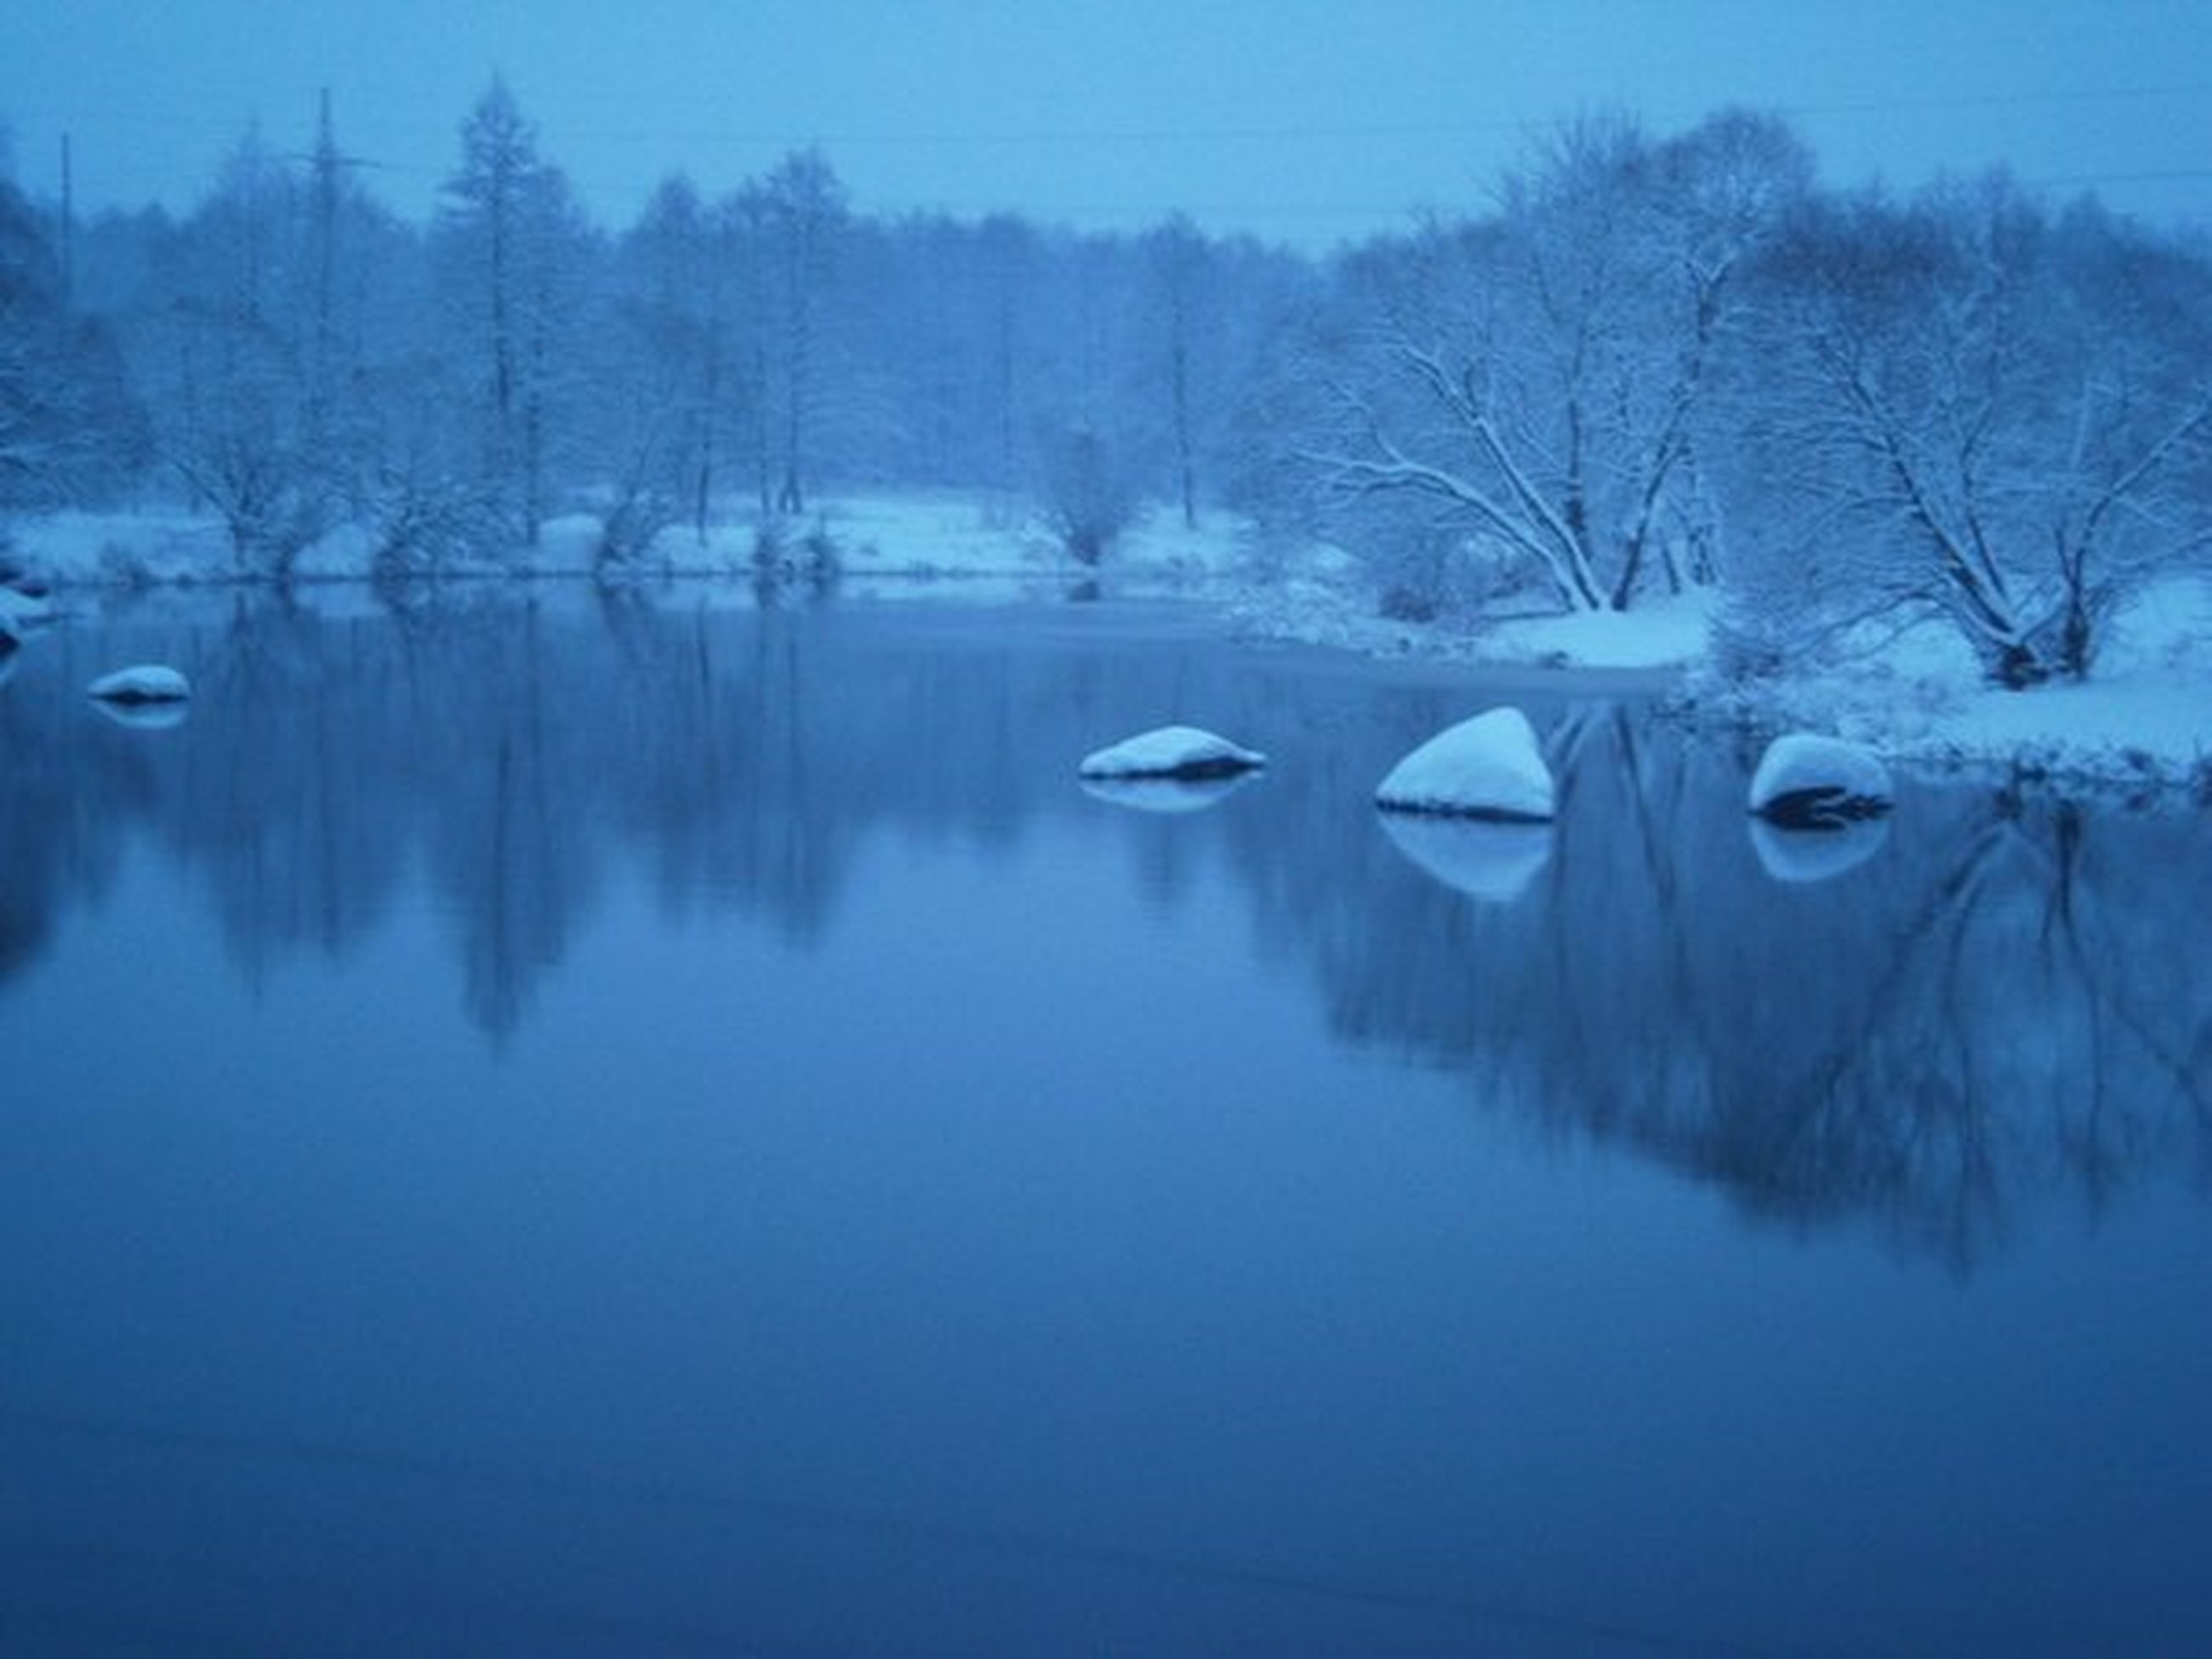 winter, snow, cold temperature, season, tranquil scene, tranquility, lake, water, tree, bare tree, reflection, scenics, beauty in nature, frozen, weather, nature, waterfront, covering, blue, non-urban scene